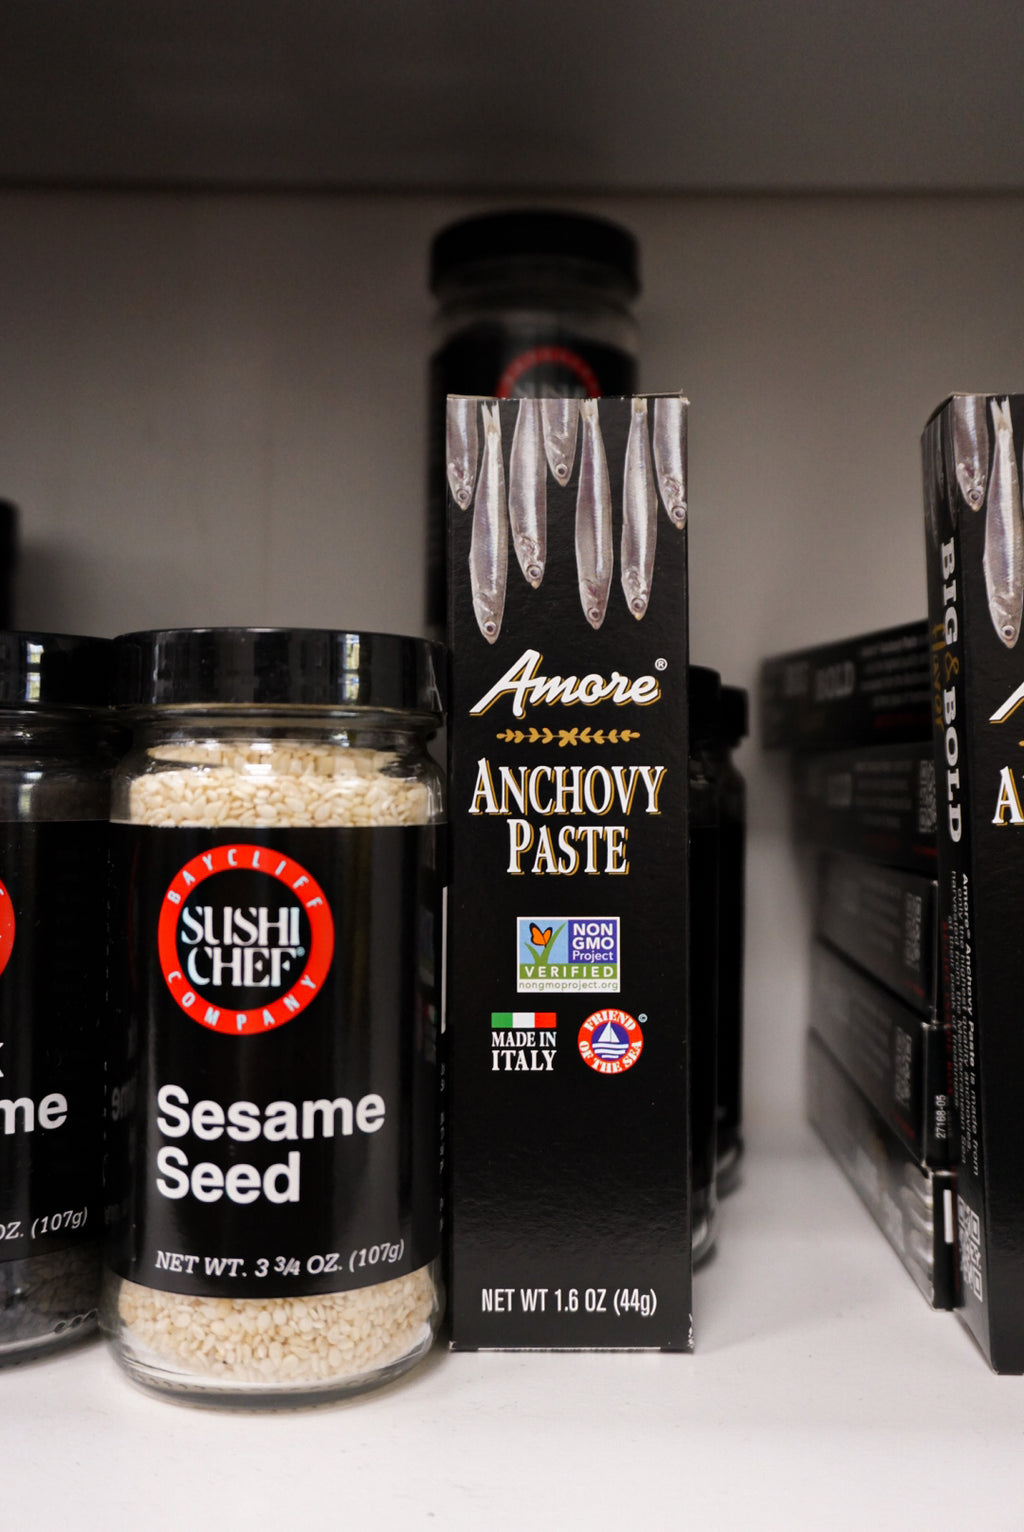 Amore Anchovy Paste 1.58 oz Tube - New Canaan